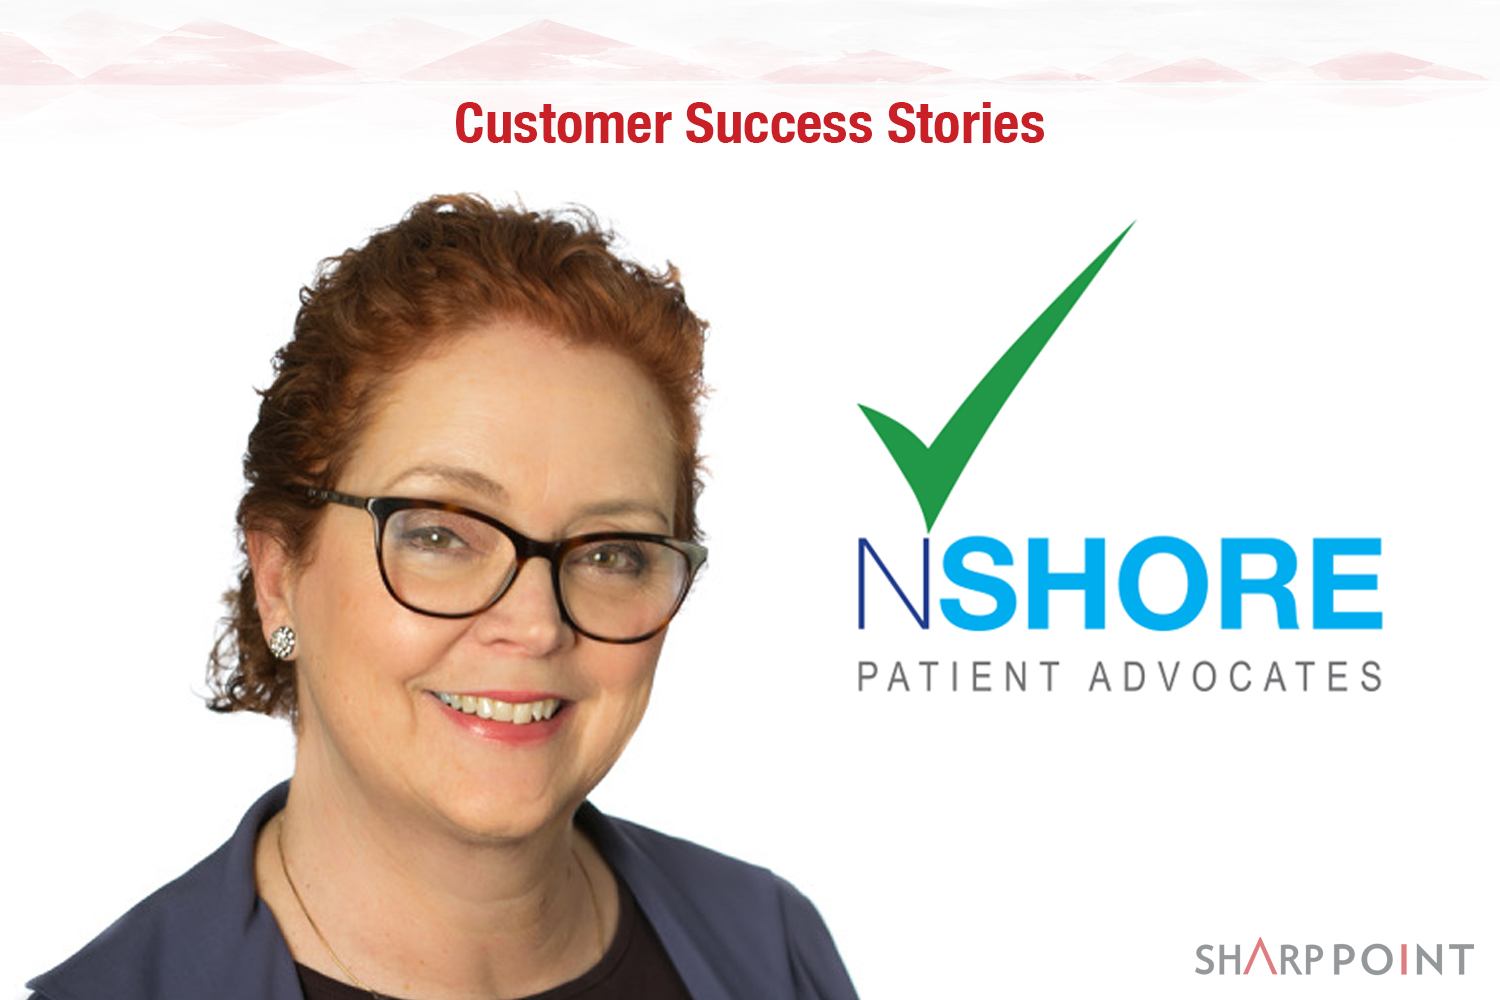 Customer-Success-Stories-2.jpg